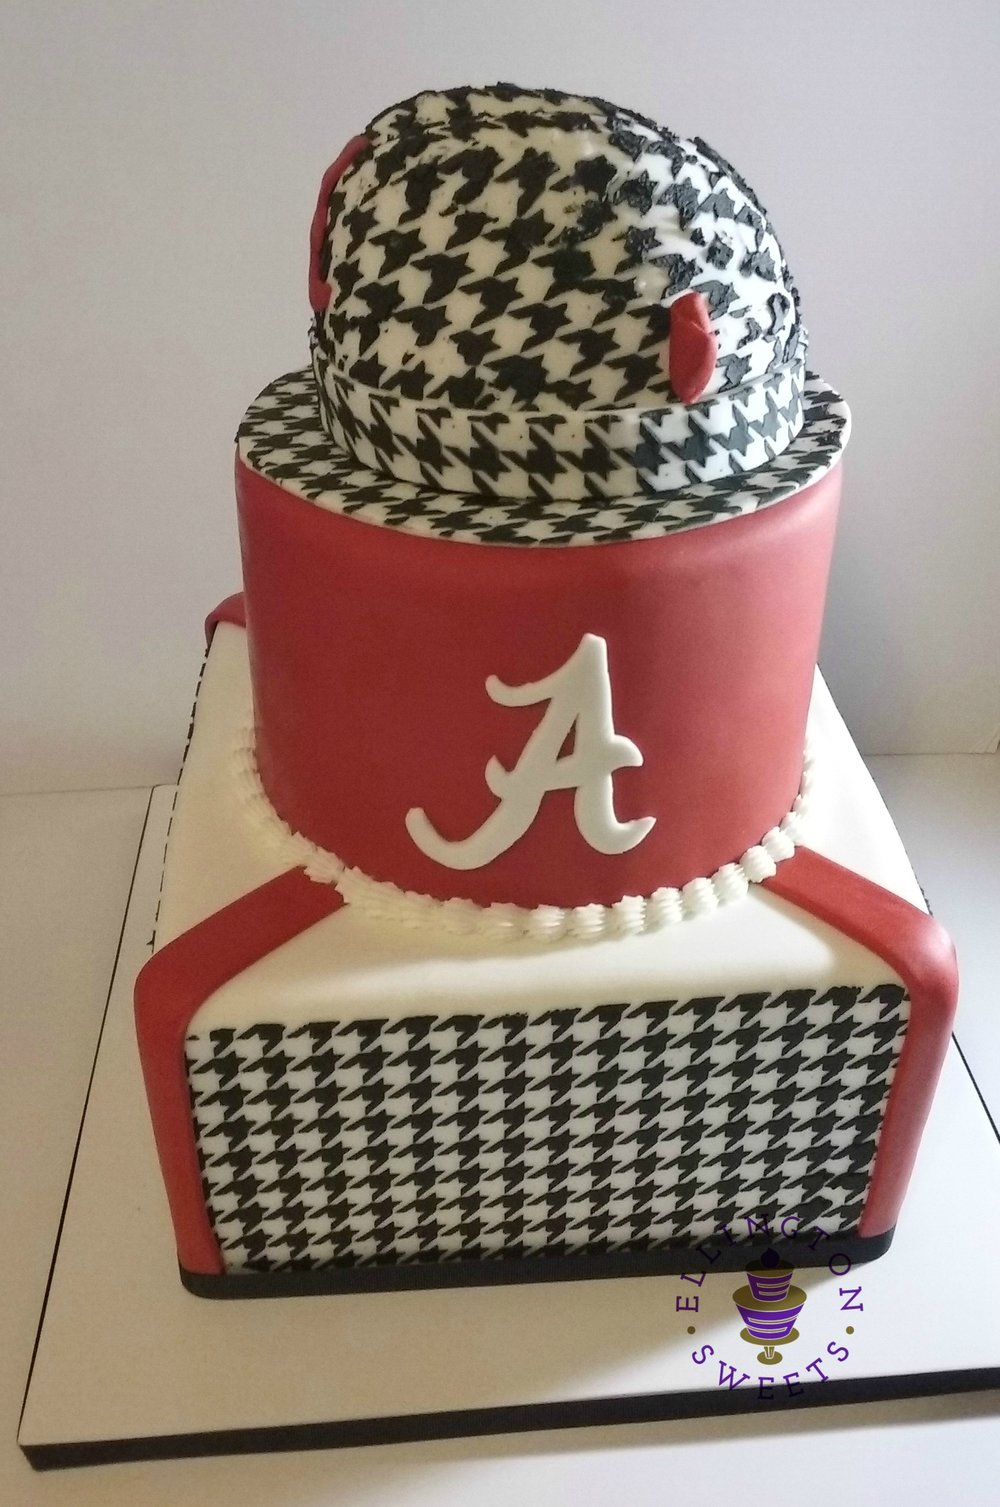 Alabama cake edited.jpg